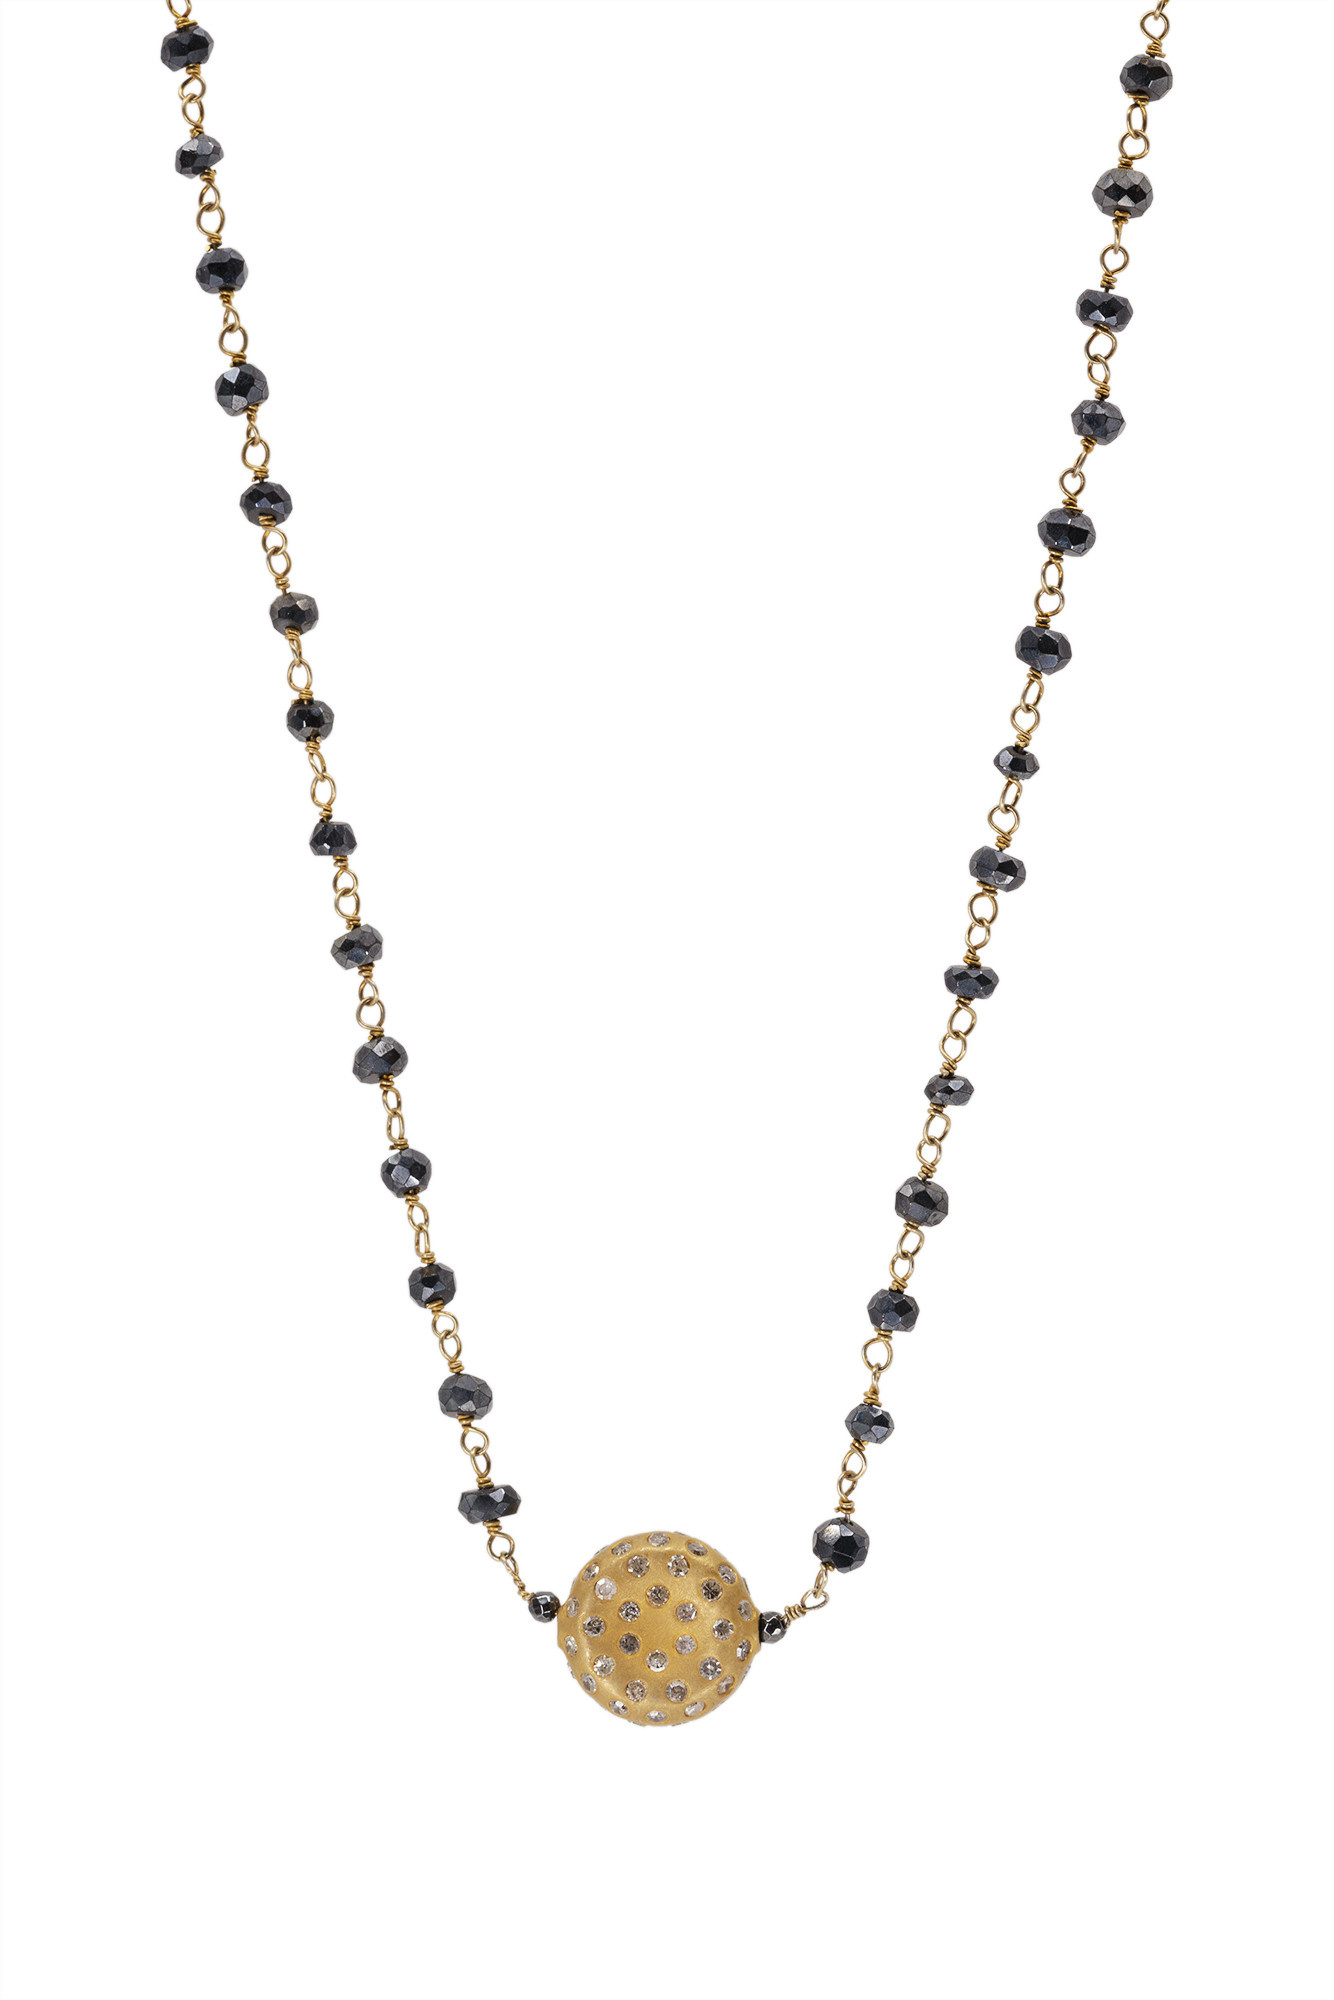 Sapphire & Gold Vermeil Chain with Pave Diamond Gold Pendant Necklace